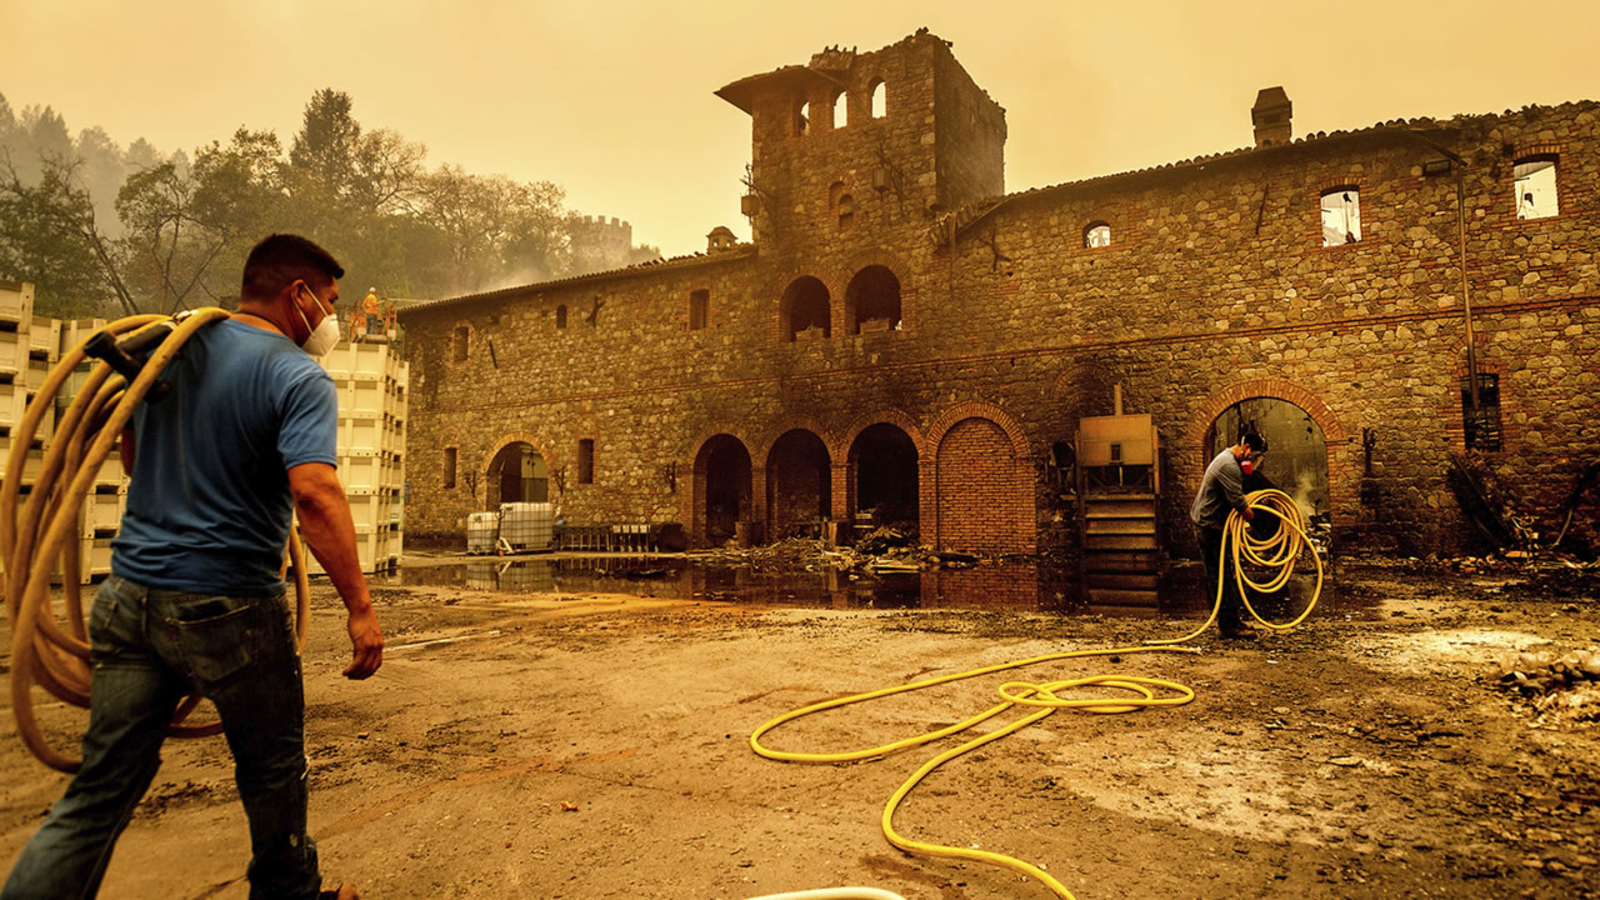 'the Wine Was Destroyed': Parts Of Famed Castello Di Amorosa Winery Destroyed In Glass Fire photo